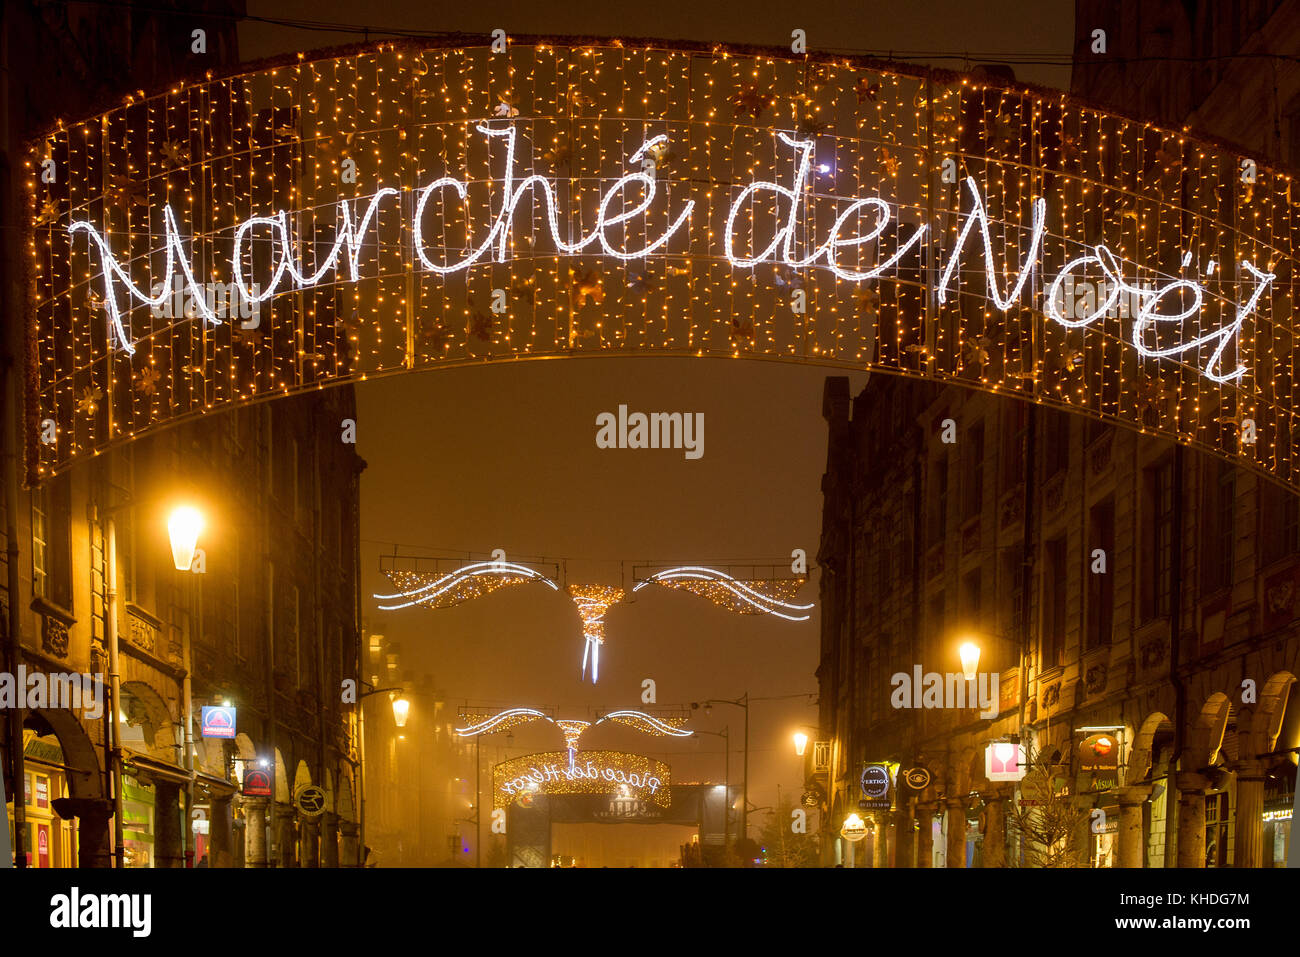 Illuminated sign advertising an outdoor Christmas market in Arras, France Stock Photo